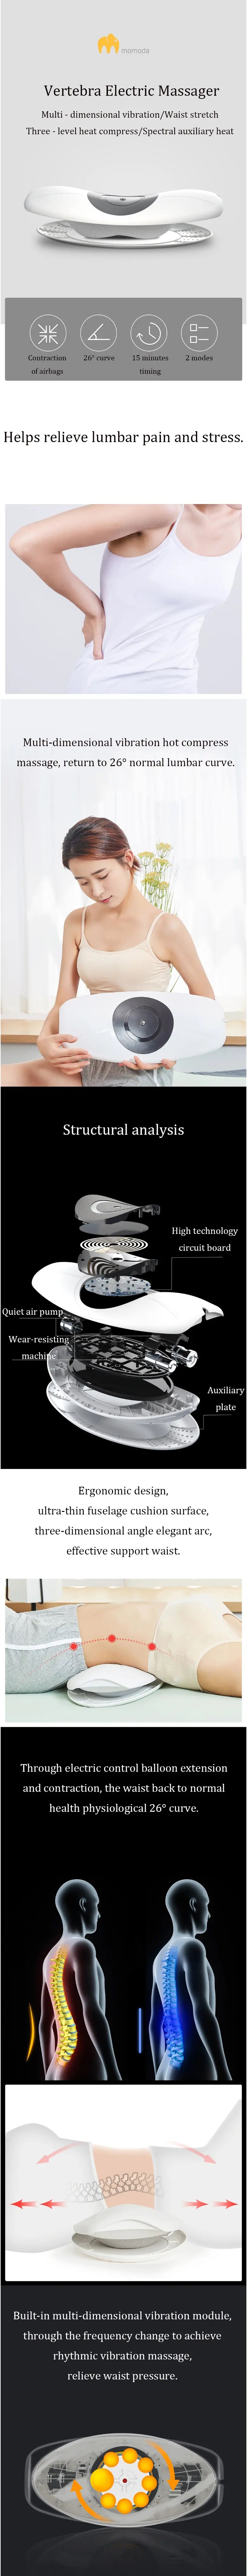 Lumbar massager for back pain in india